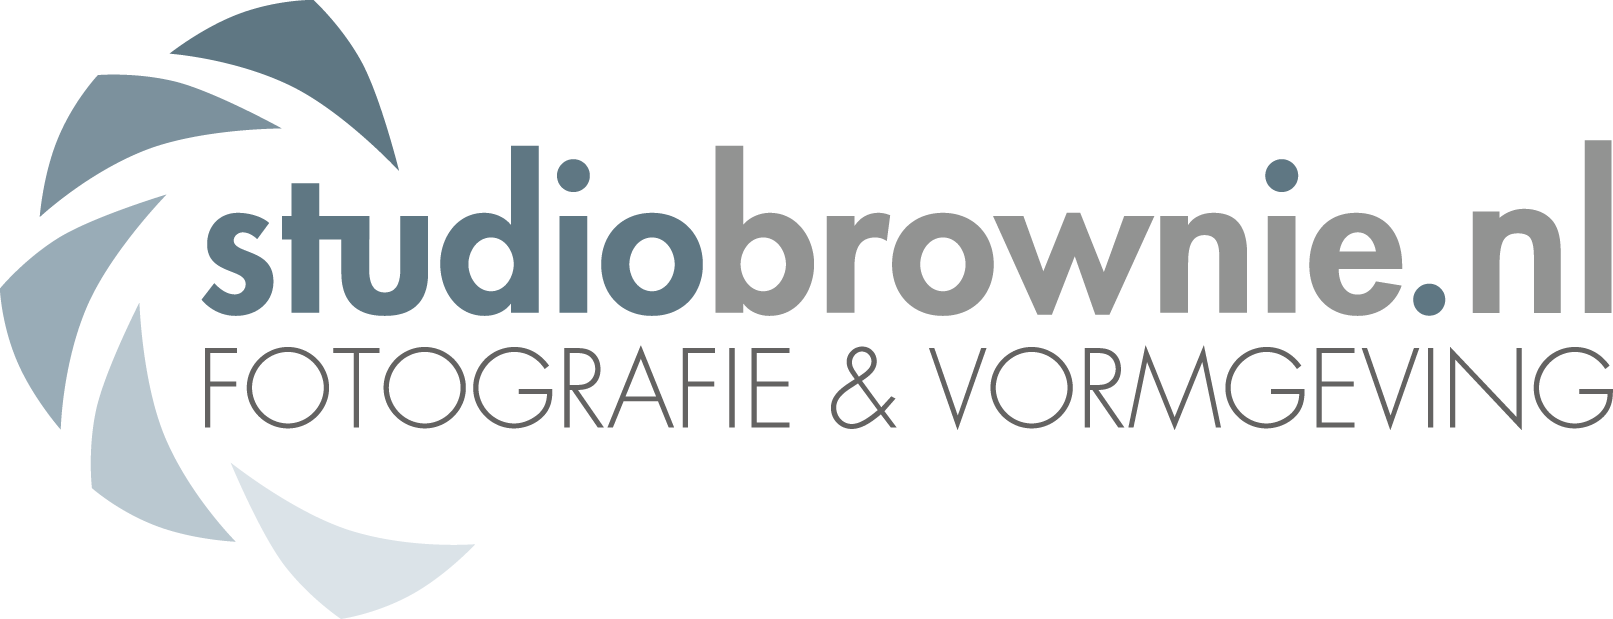 studiobrownie nl logo